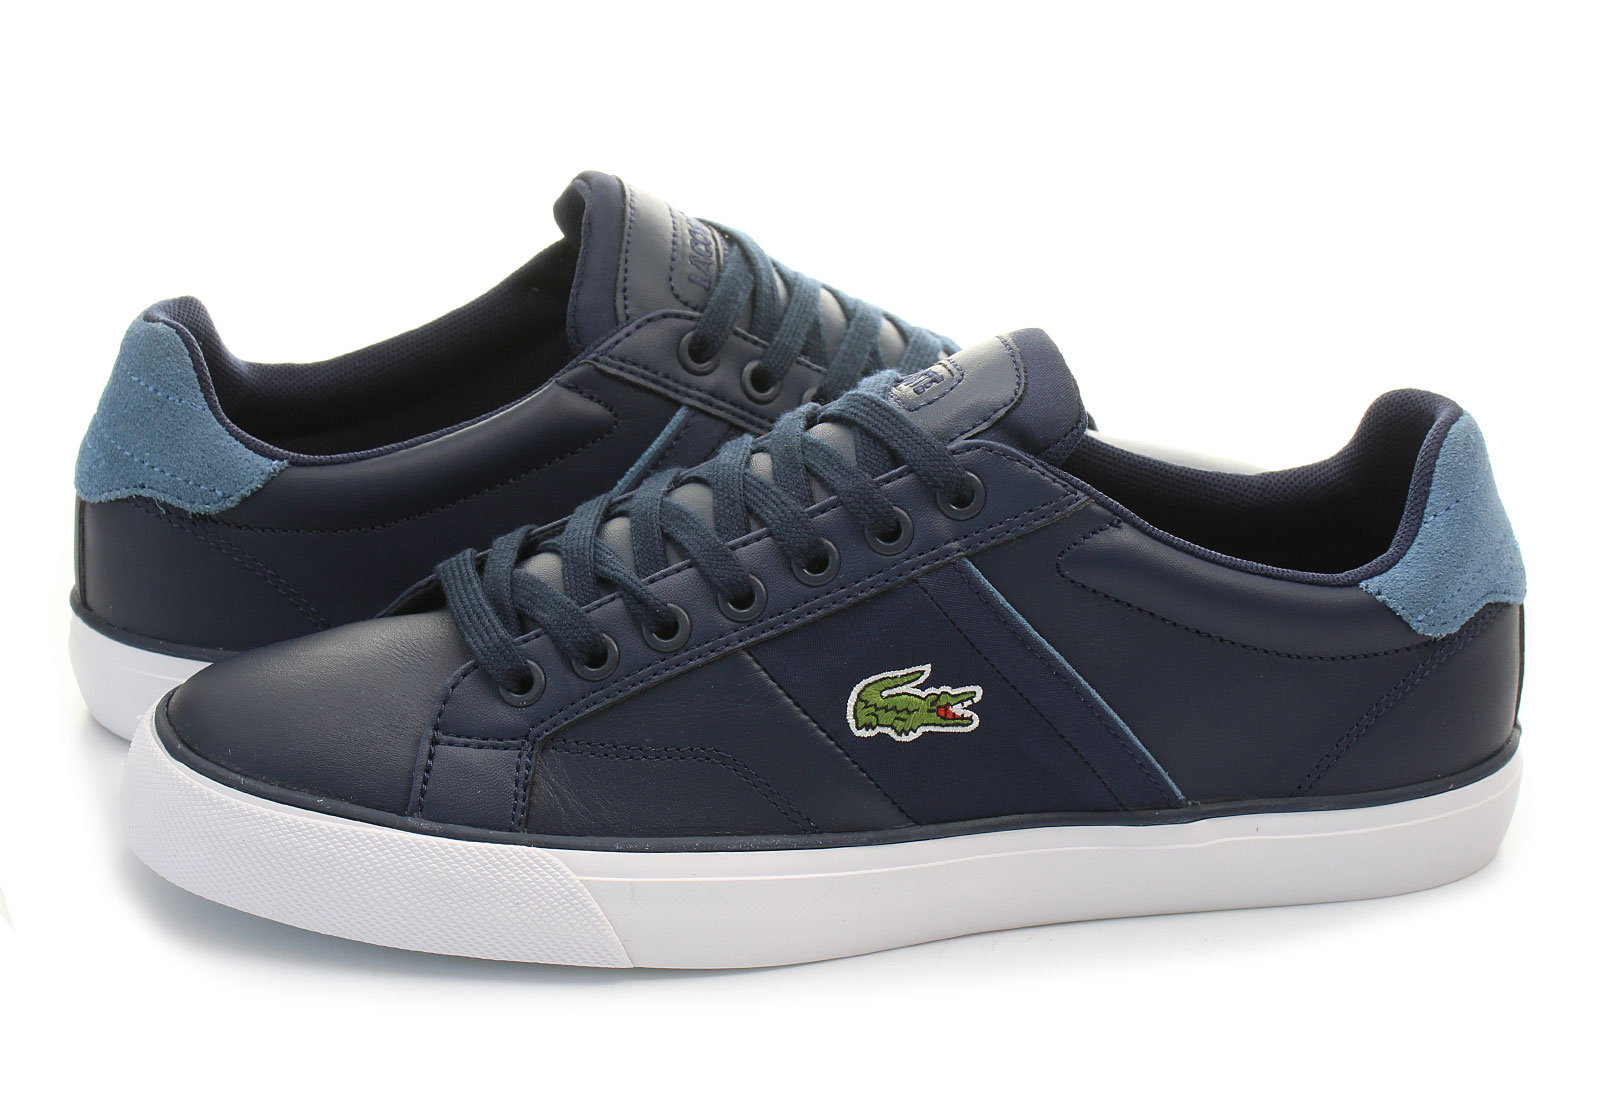 Lacoste Shoes - Fairlead - 163spm0013-003 - Online shop for ... 3e4db0f715